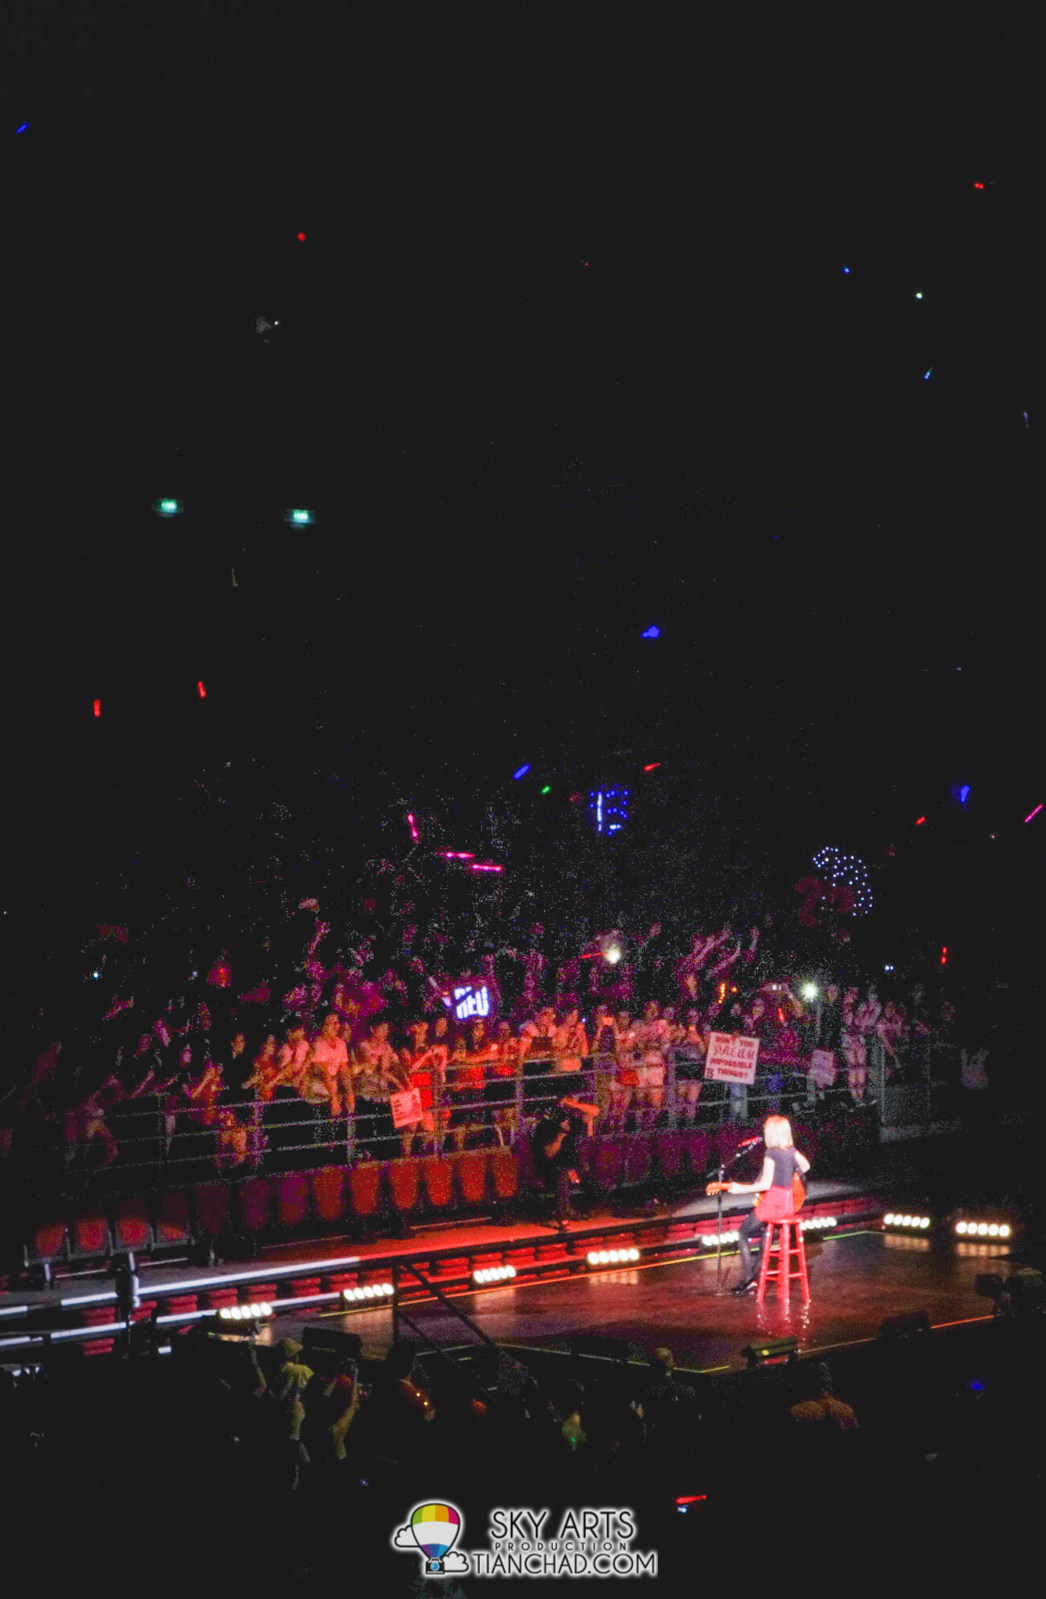 Taylor Swift serenade to fans near Stage B. So close!!